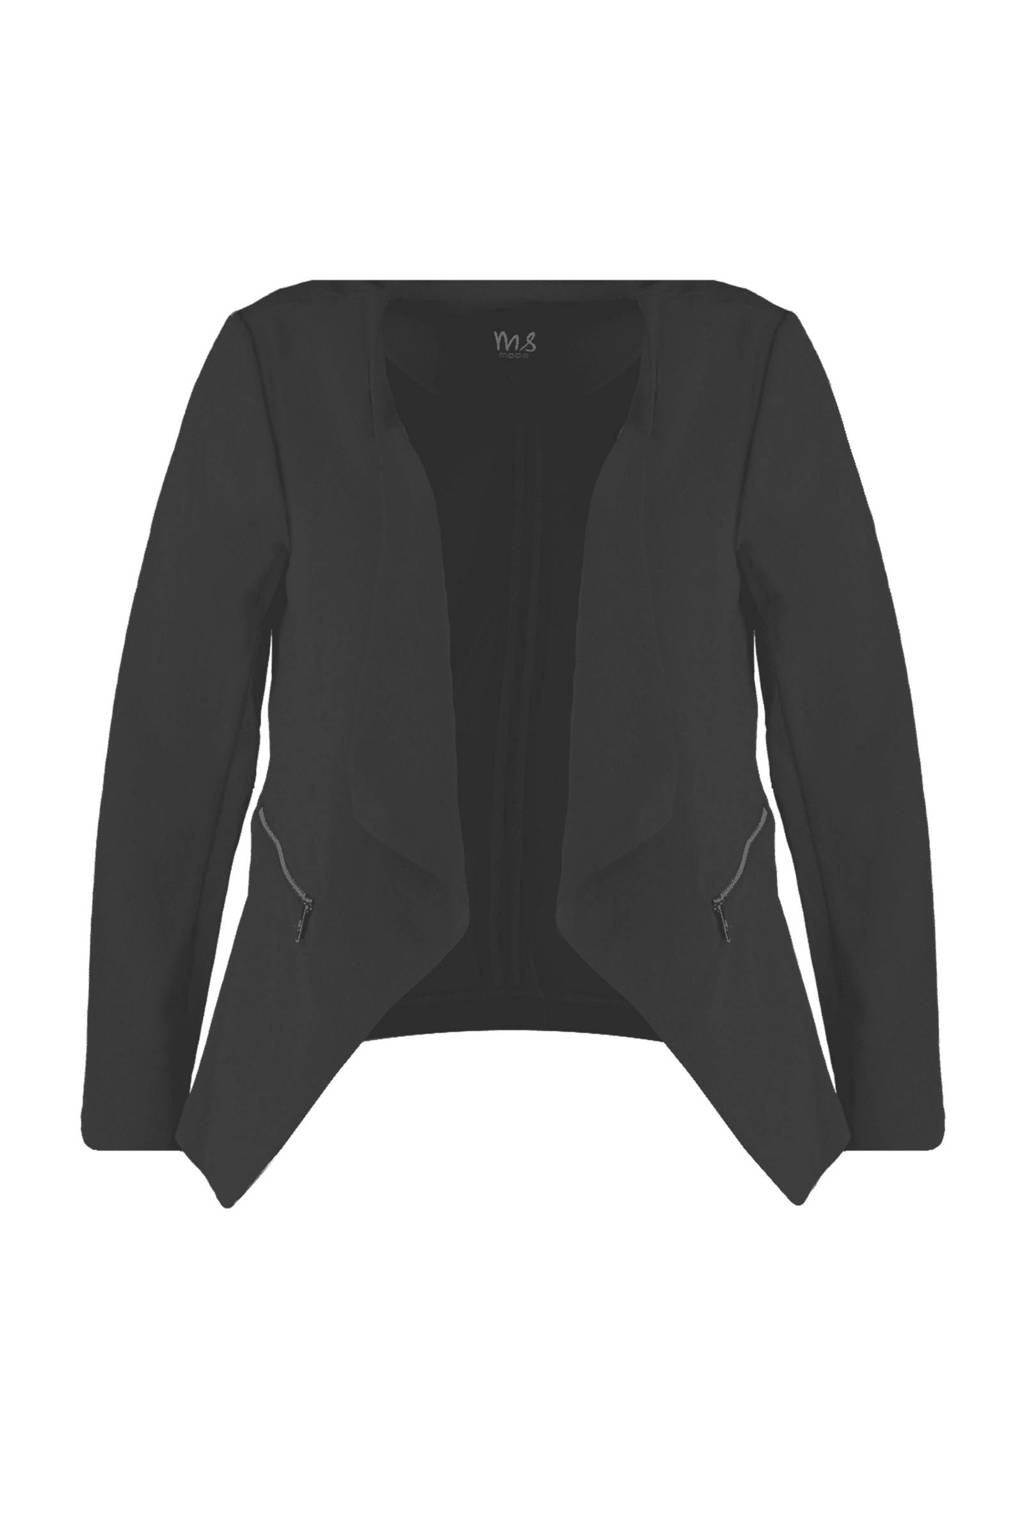 MS Mode blazer zwart, Zwart